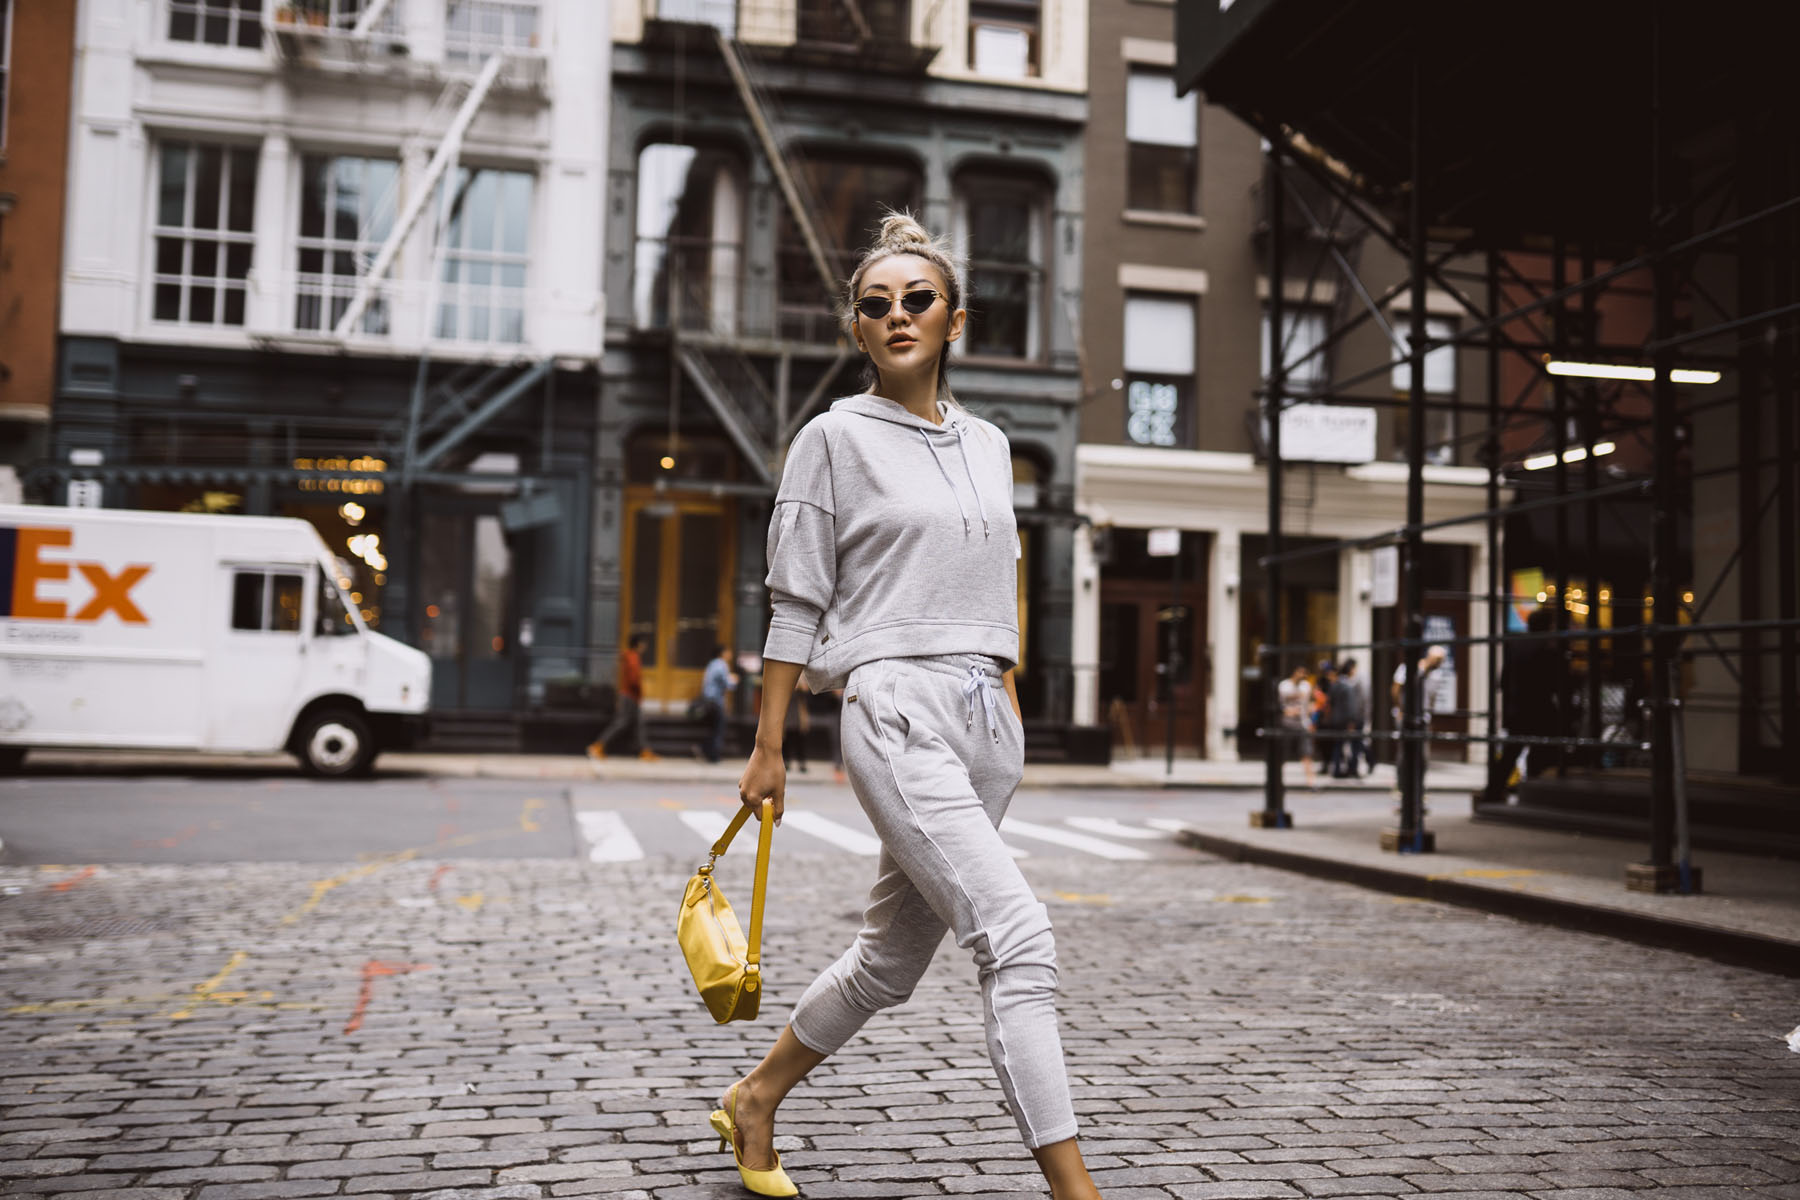 fresh ways to wear athleisure, joggers and kitten heels, joggers with heels, cool athleisure style // Notjessfashion.com